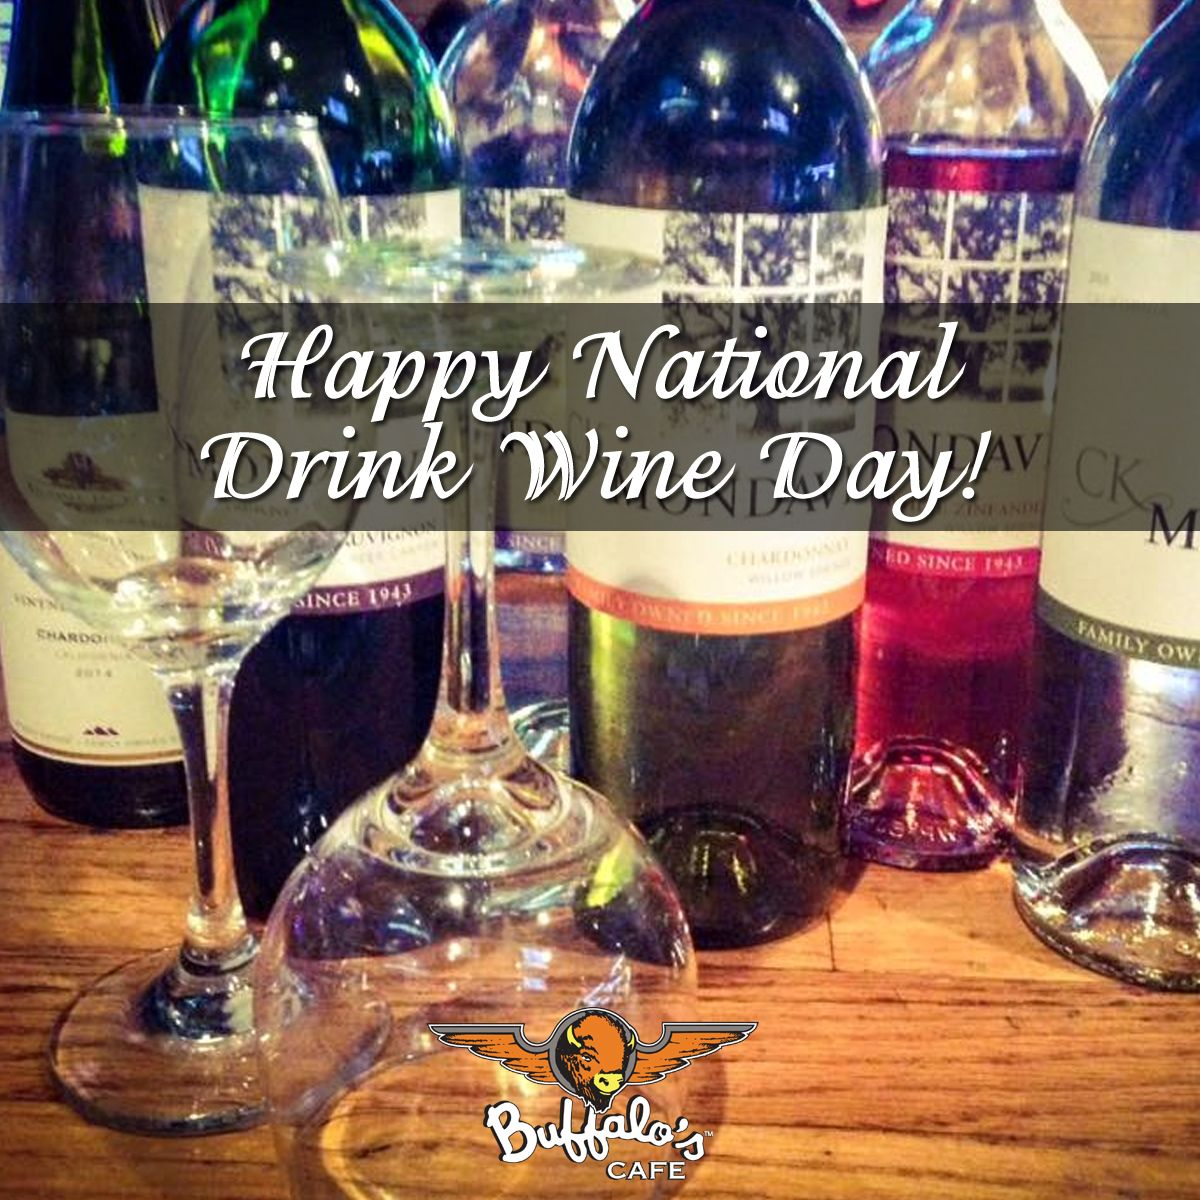 It's National Drink Wine Day! One of our favorite days